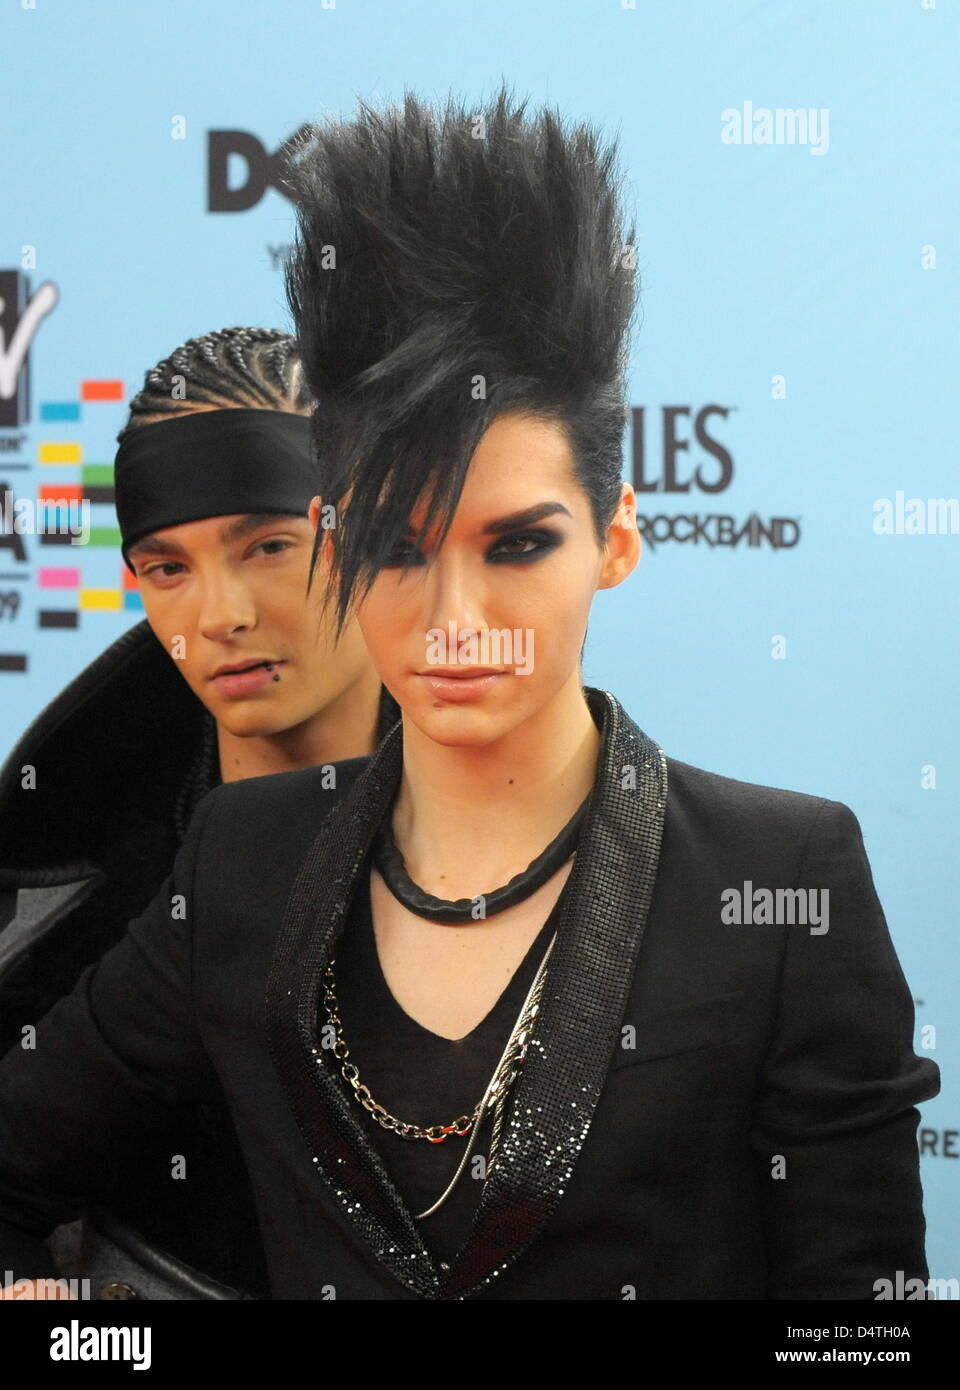 Picture of tom kaulitz - Brothers Bill Kaulitz Front And Tom Kaulitz Of The German Band Tokio Hotel